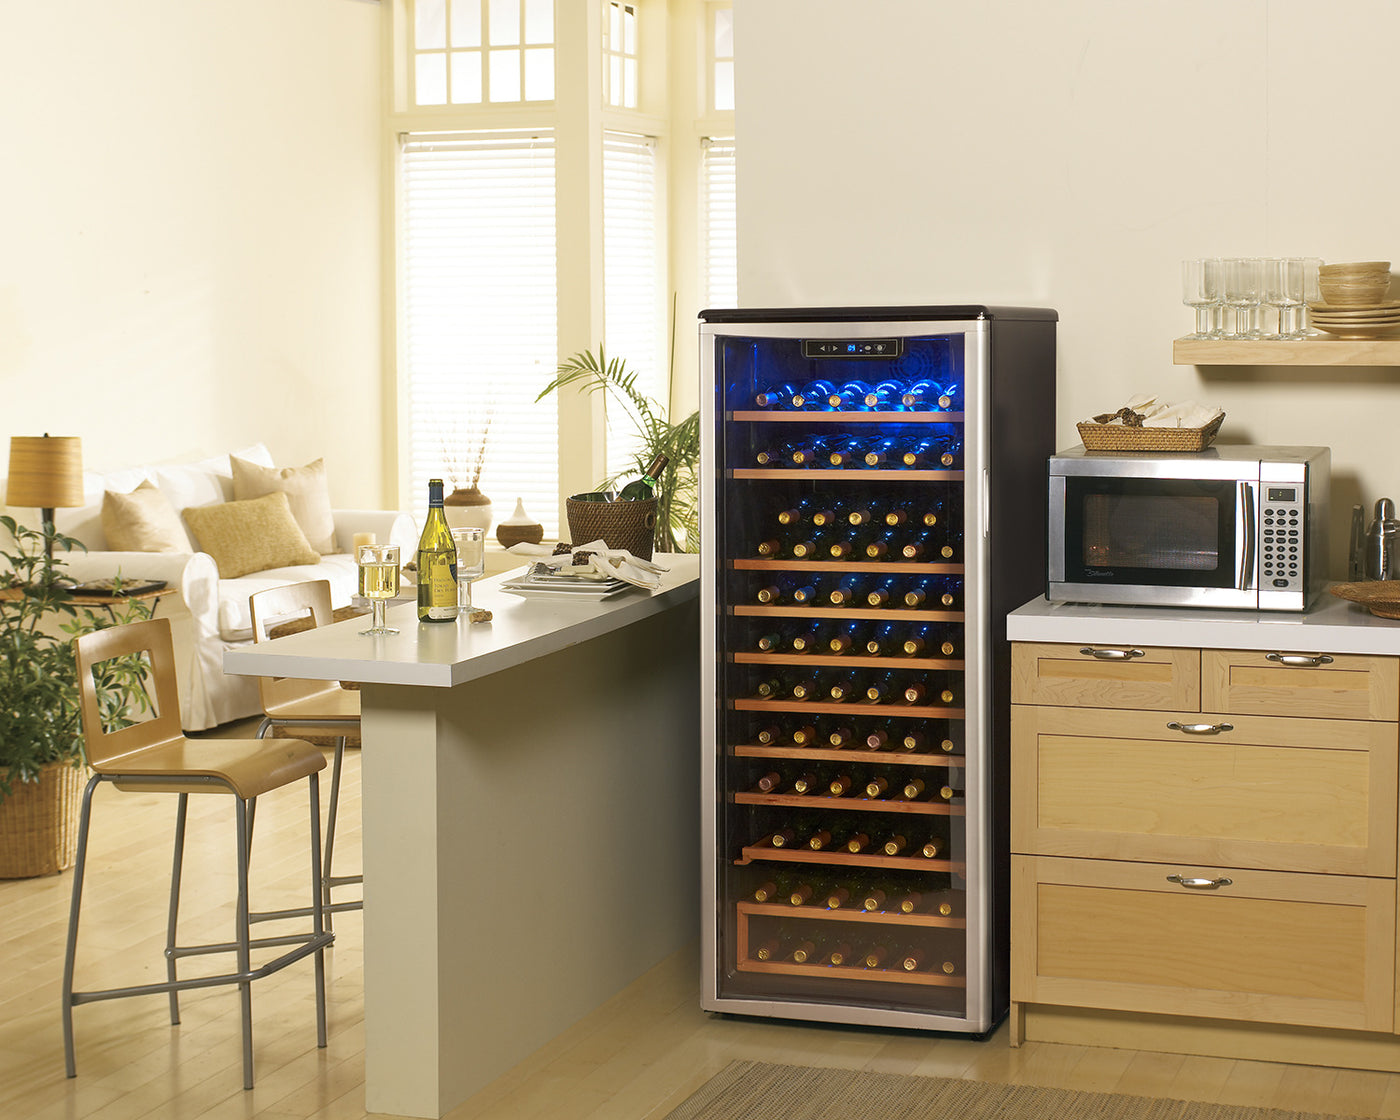 Danby Platinum Wine Cooler 10 6 Cu Ft Dwc106a1bpdd